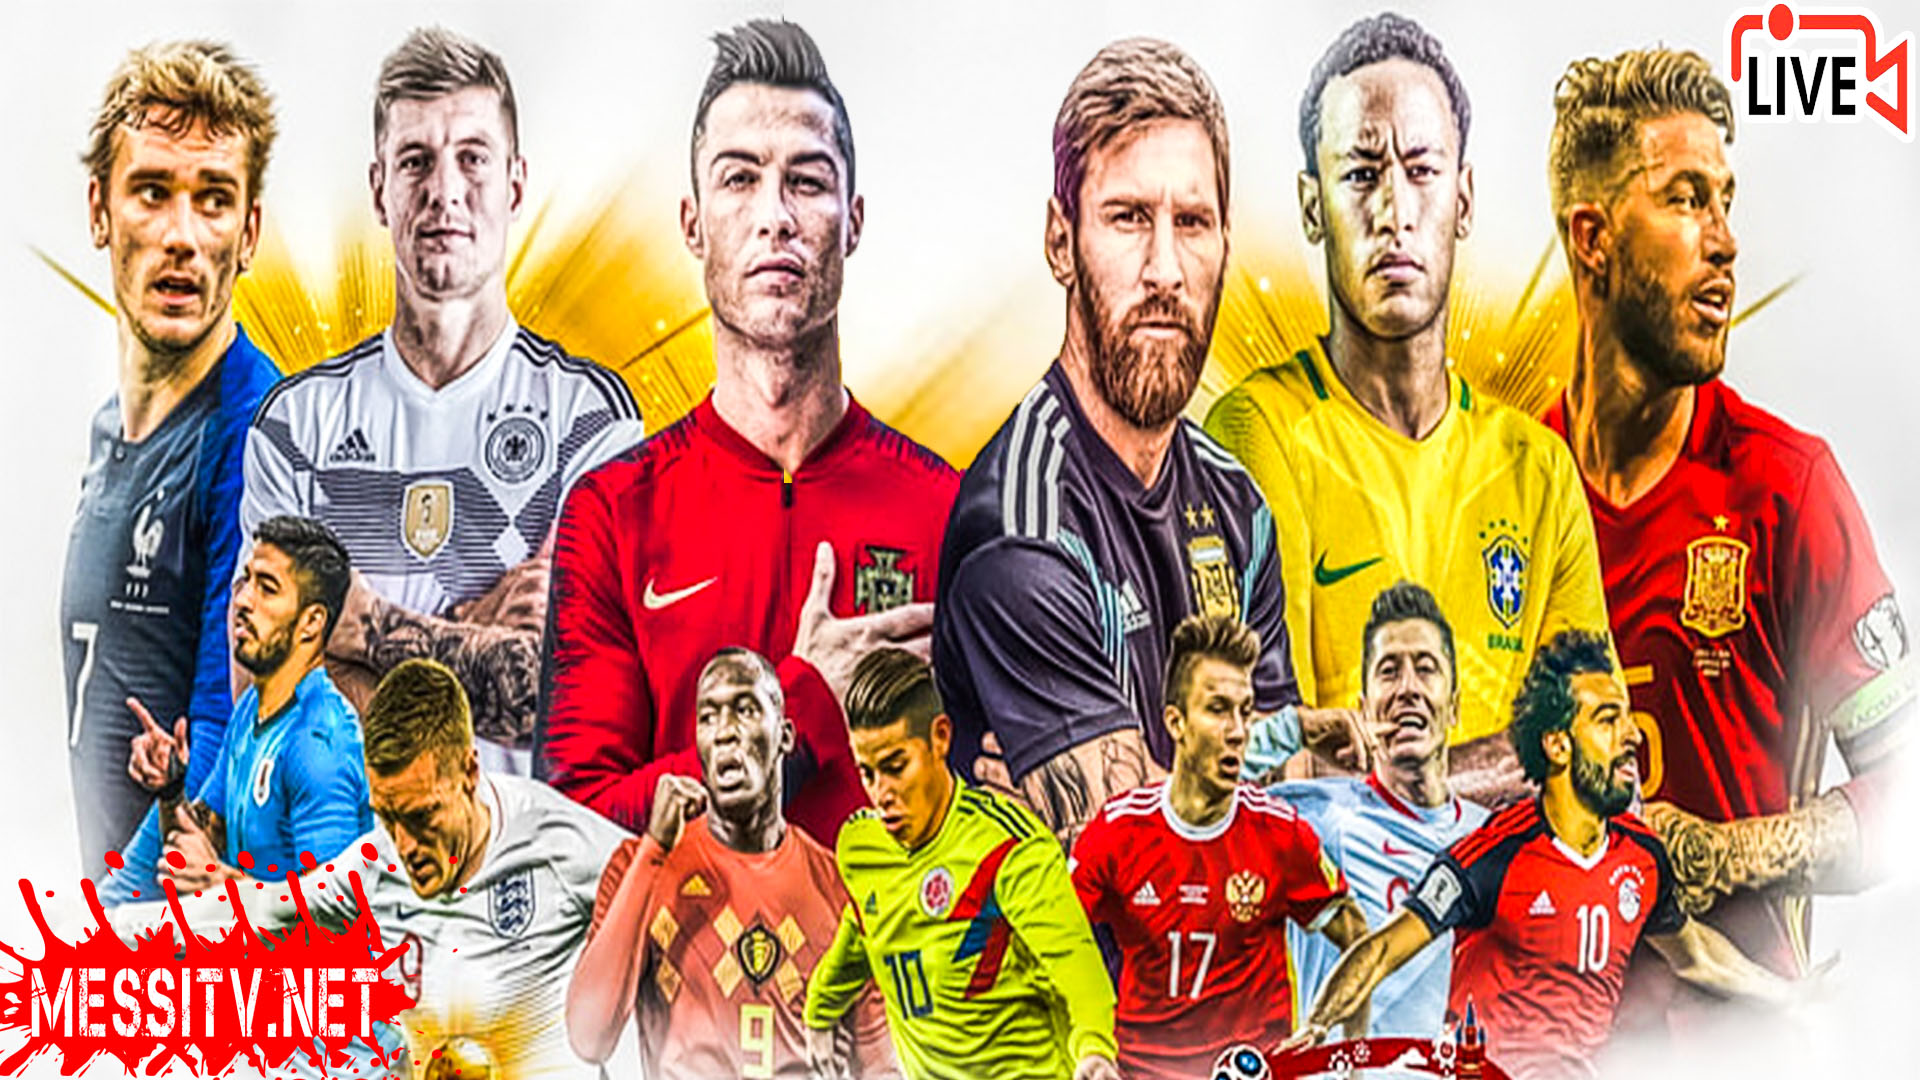 Watch All Soccer (Football) Matches Live Stream Online [Full HD + 4K + Support Mobile], Watch Soccer live online, watch Football live online, watch Portugal vs Luxembourg live online, watch England vs Hungary live online, watch Sweden vs Greece live online, watch Albania vs Poland live online, watch Denmark vs Austria live online, watch Bulgaria vs Northern Ireland live online, watch Faroe Islands vs Scotland live online, watch Ireland Republic vs Qatar live online, Assistir Inglaterra Soccer ao vivo online, assistir futebol ao vivo online, assistir Portugal vs Luxembourg ao vivo online, England vs Hungary ao vivo online, assistir Sweden vs Greece ao vivo online, assistir Albania vs Poland ao vivo online, assistir Denmark vs Austria ao vivo online, assistir Bulgaria vs Northern Ireland ao vivo online, assistir Faroe Islands vs Scotland ao vivo online, assistir Ireland Republic vs Qatar ao vivo conectados, All Soccer (Football) Matches Goals & Highlights & FULL Match Replay HD, World Cup Qualifying